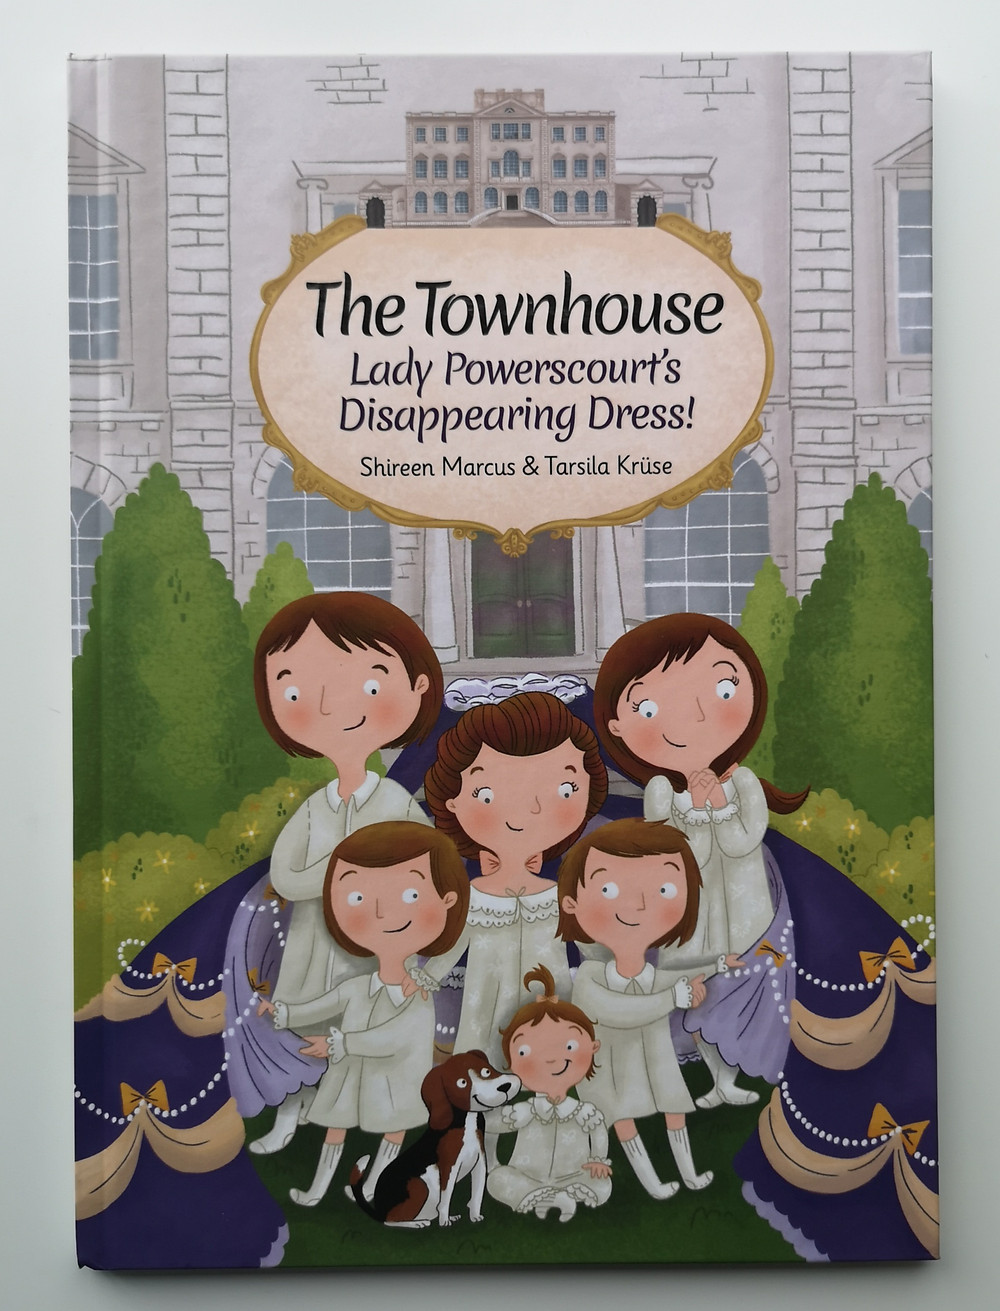 The Townhouse: Lady Powerscourt's Disappearing Dress by Shireen Marcus and Tarsila Krüse